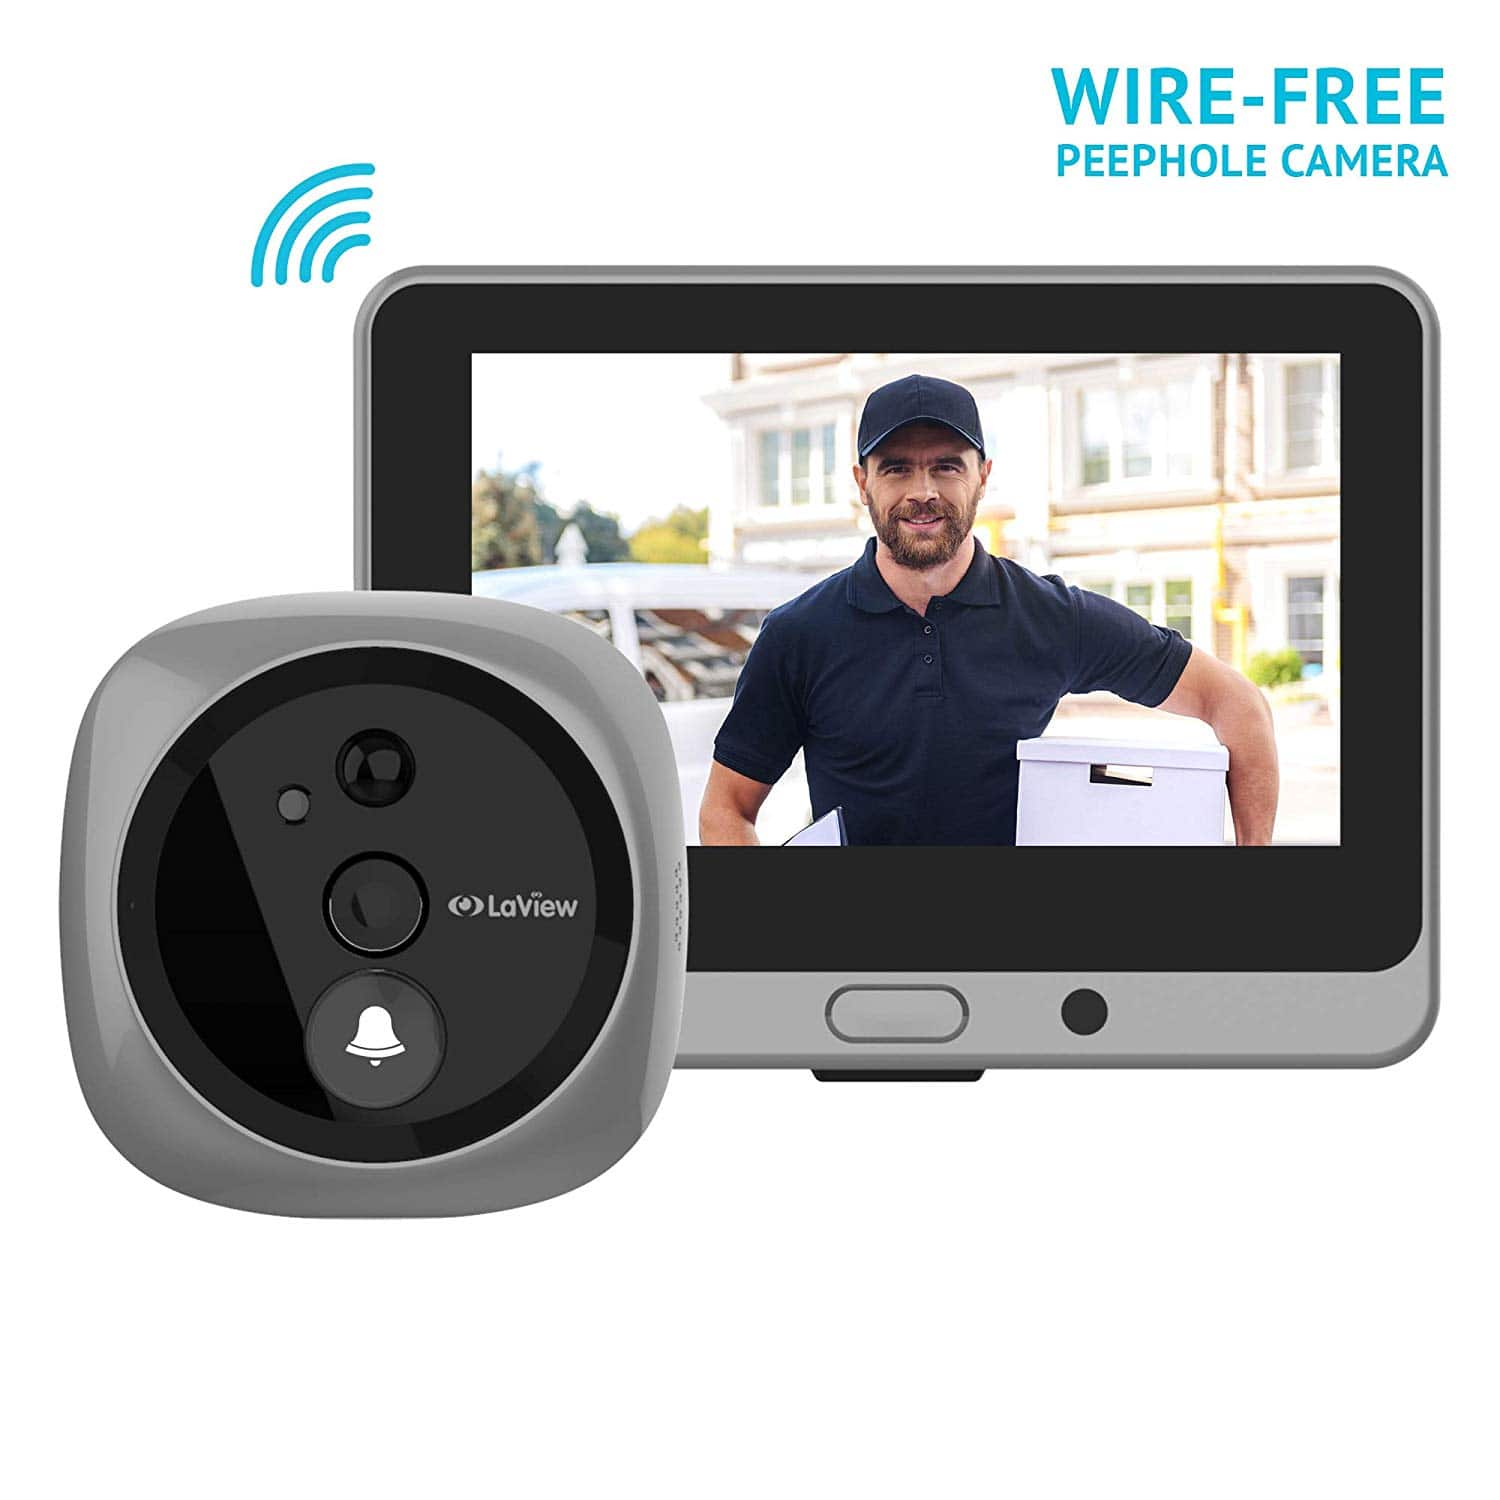 LaView Wire-free Video Doorbell Peephole Camera with Touch Screen Monitor, Rechargeable Battery/Night Vision/Two-Way Audio/Mobile View $144.49 + FS